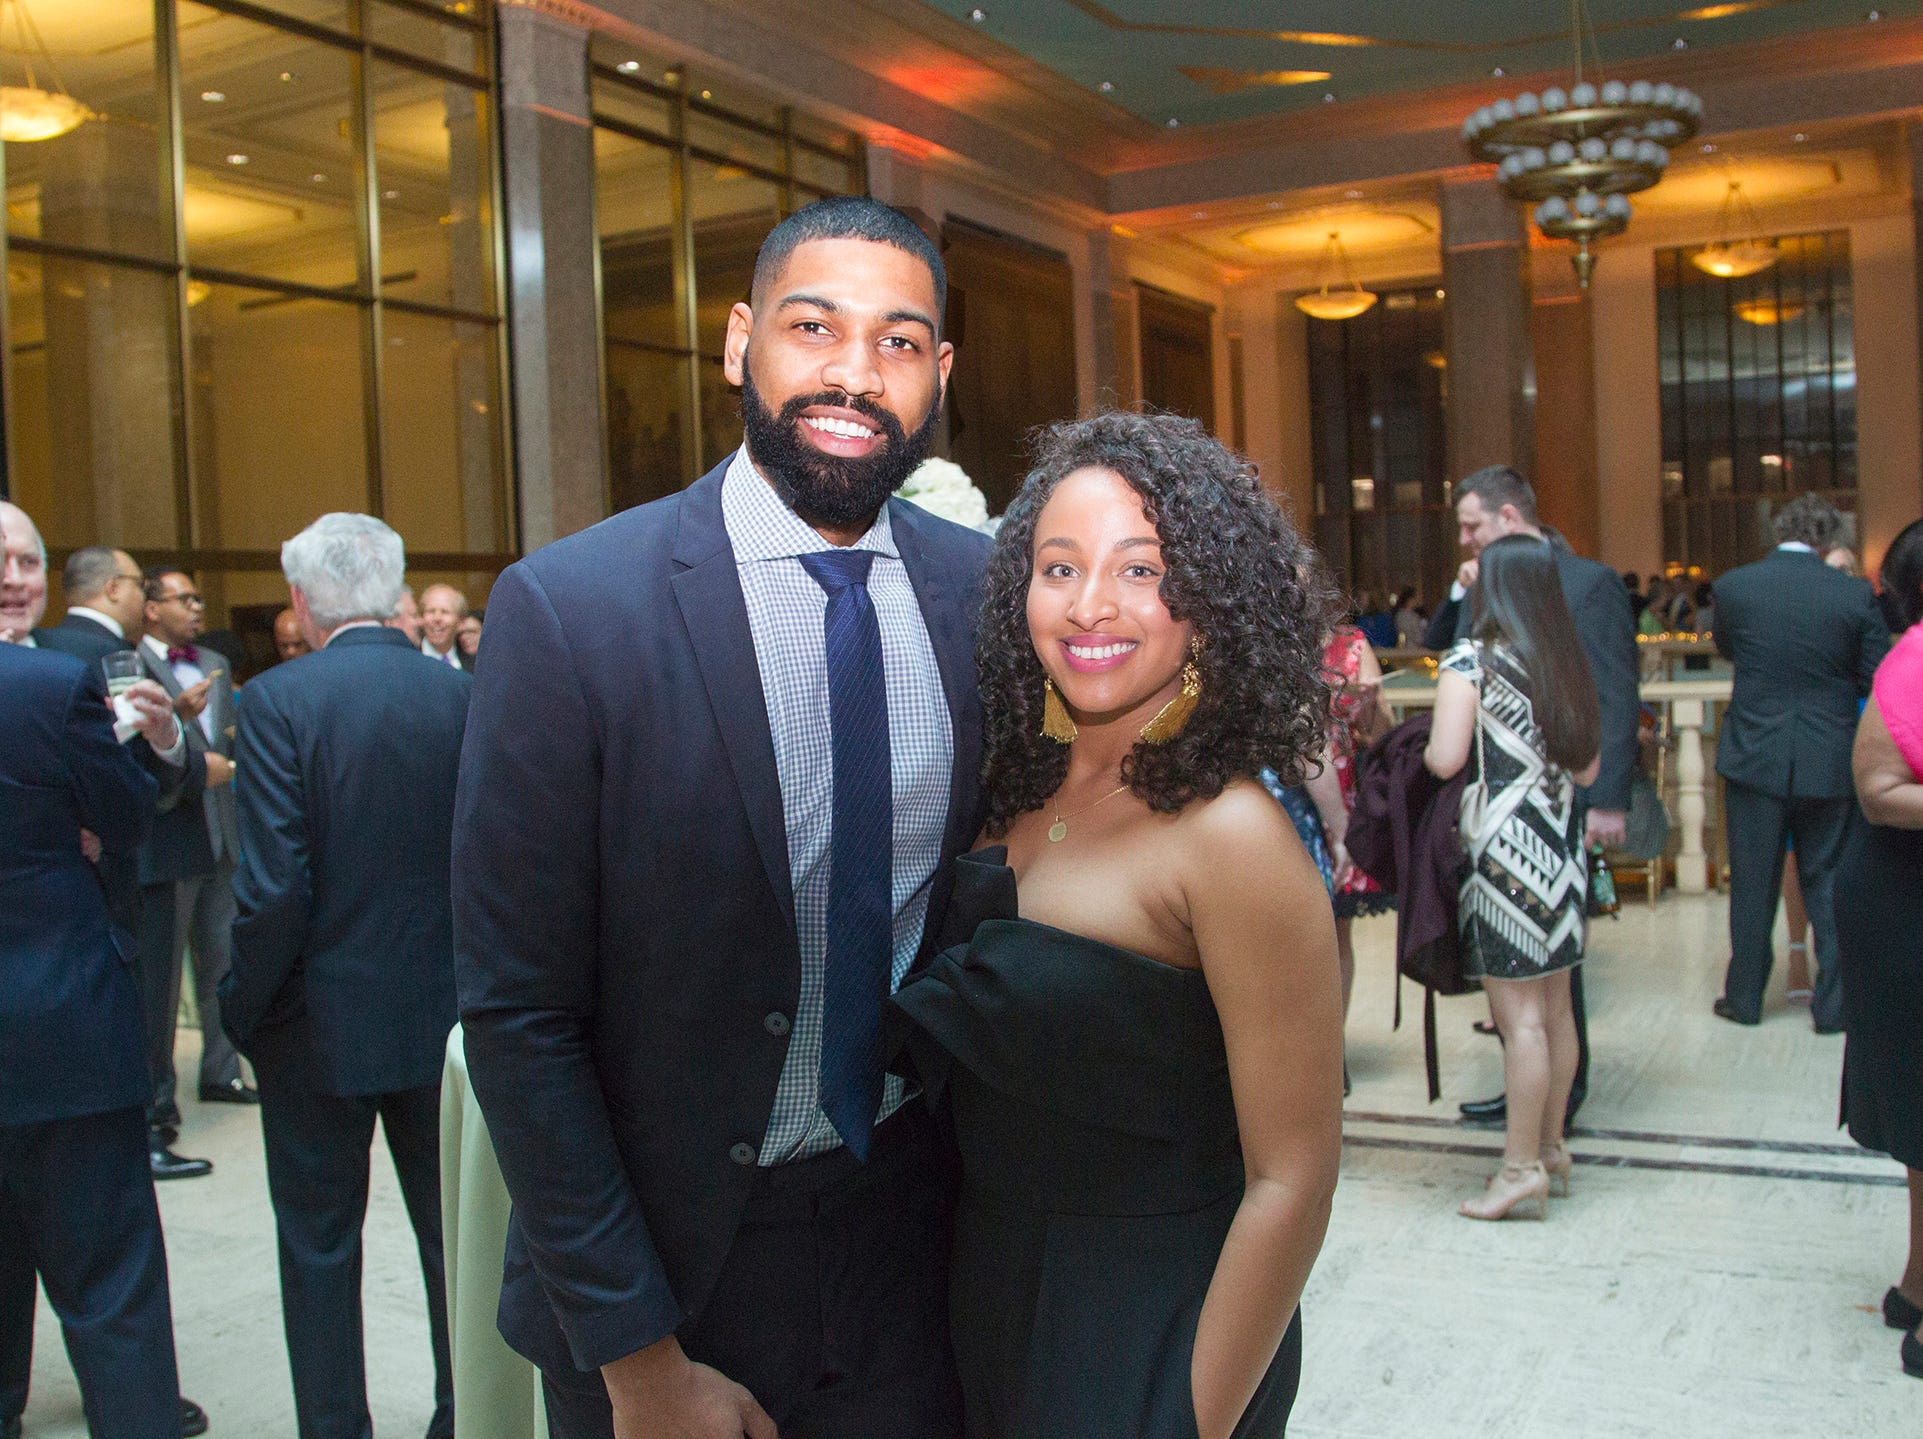 Gasan and Selwa Dickson. Philip's Education Partners host The Dream Maker 30th anniversary gala at The Mezzanine in Newark 3/29/2019.